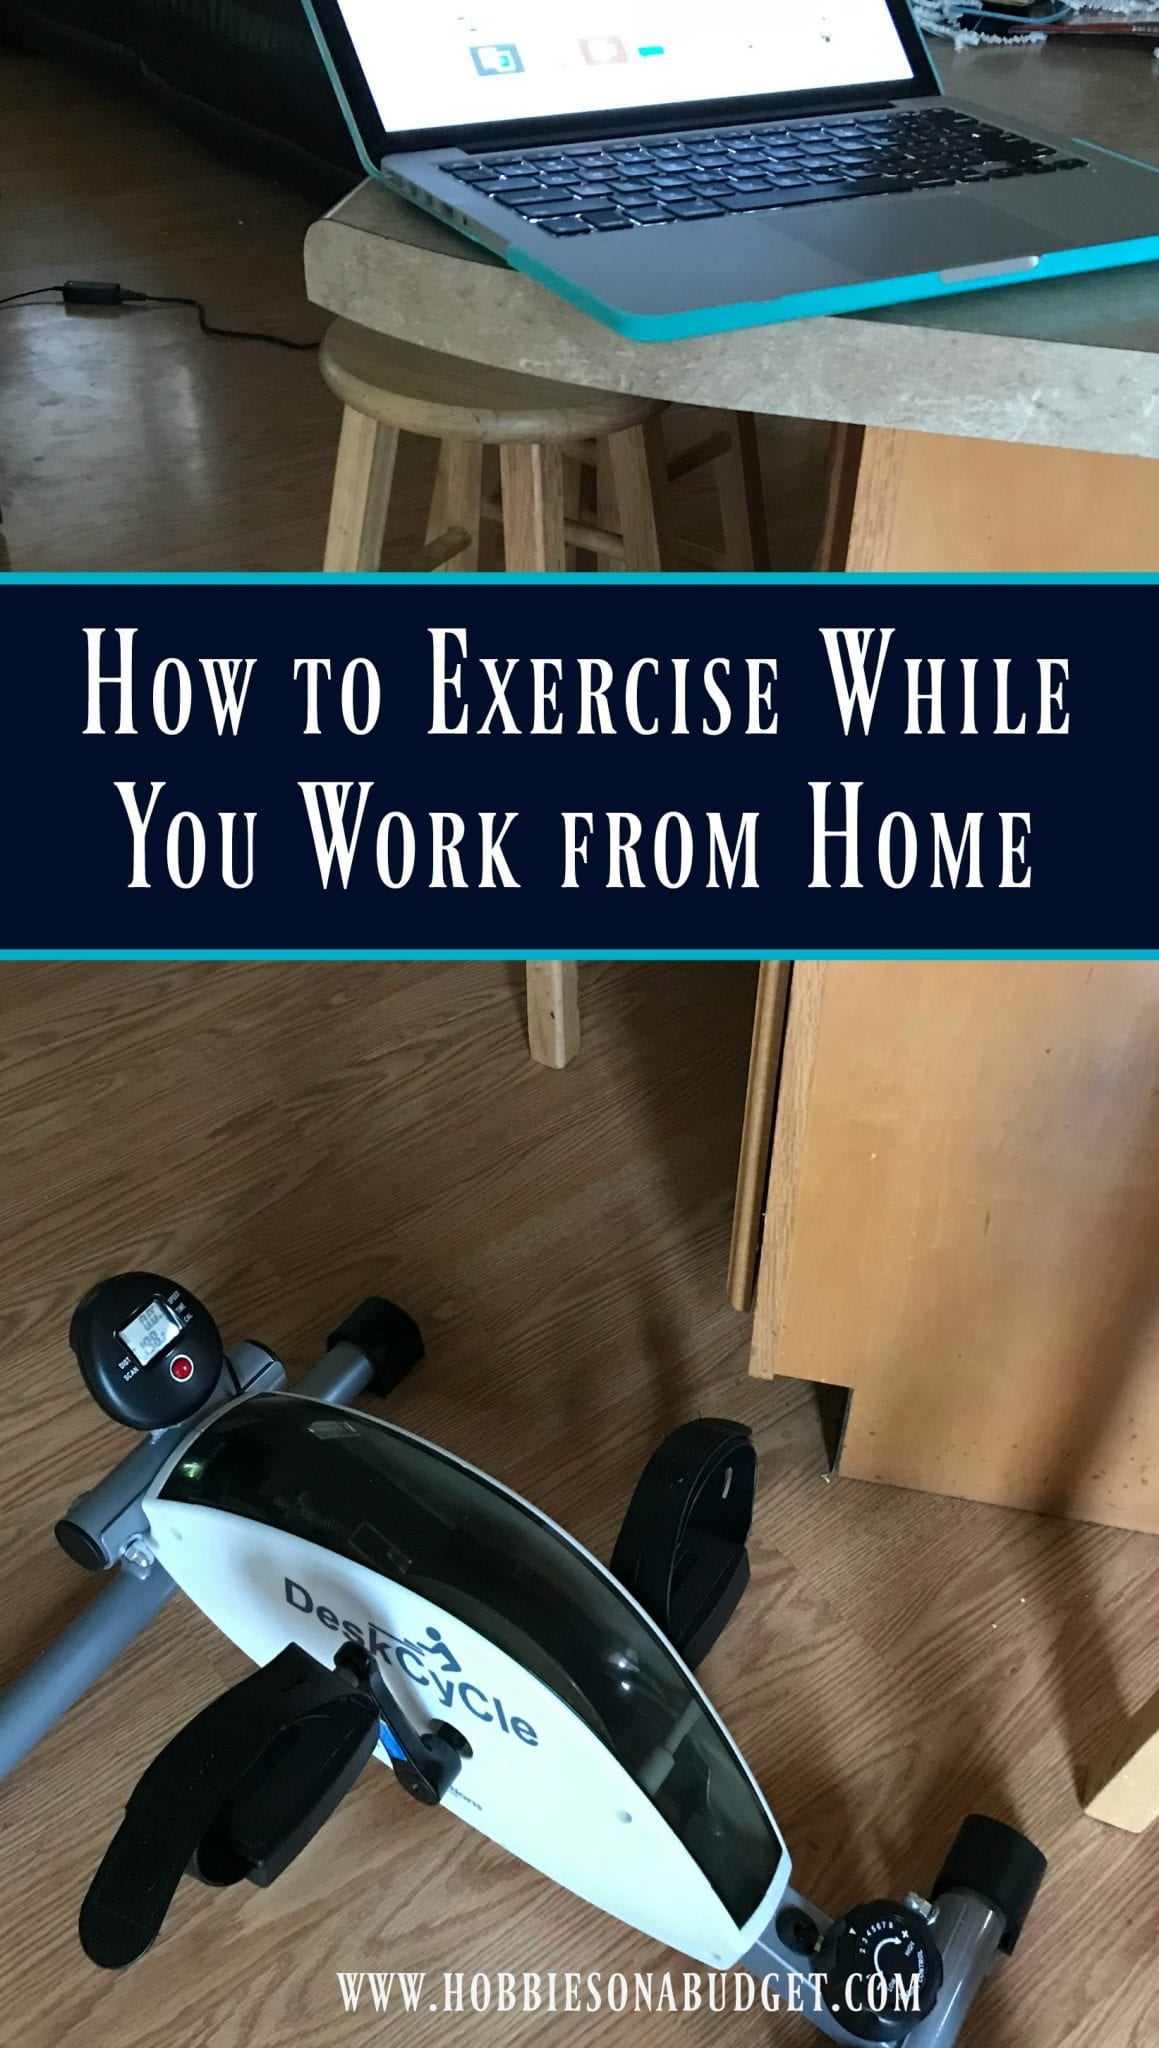 How to exercise while you work from home